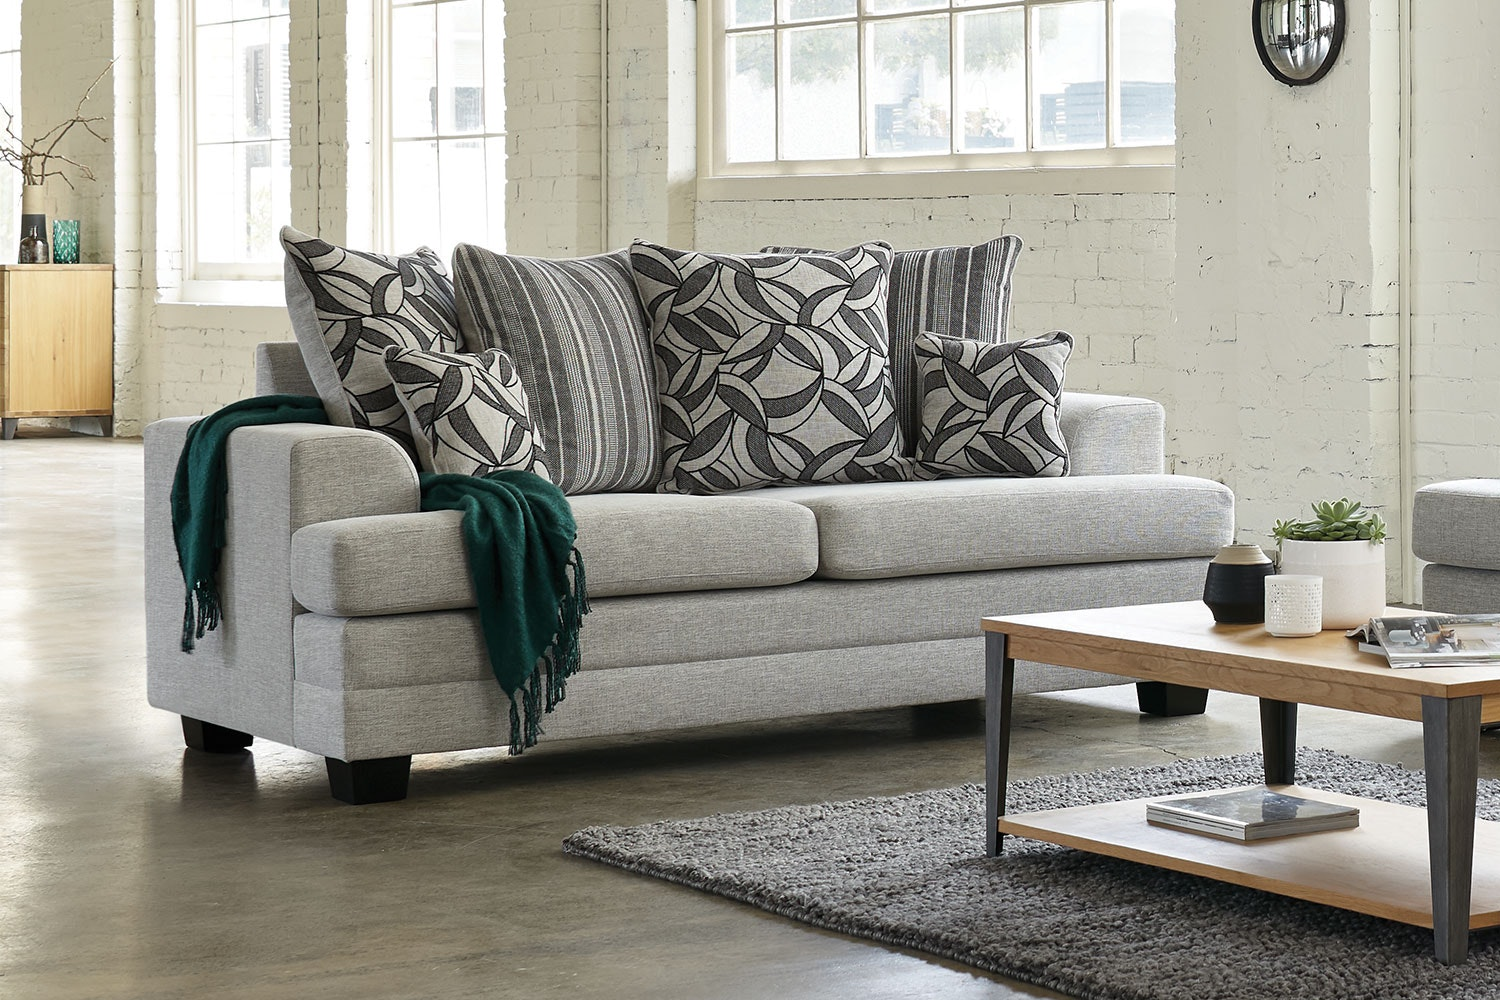 Evolution 2 Piece Fabric Lounge Suite by White Rose Furniture - 2-seater sofa